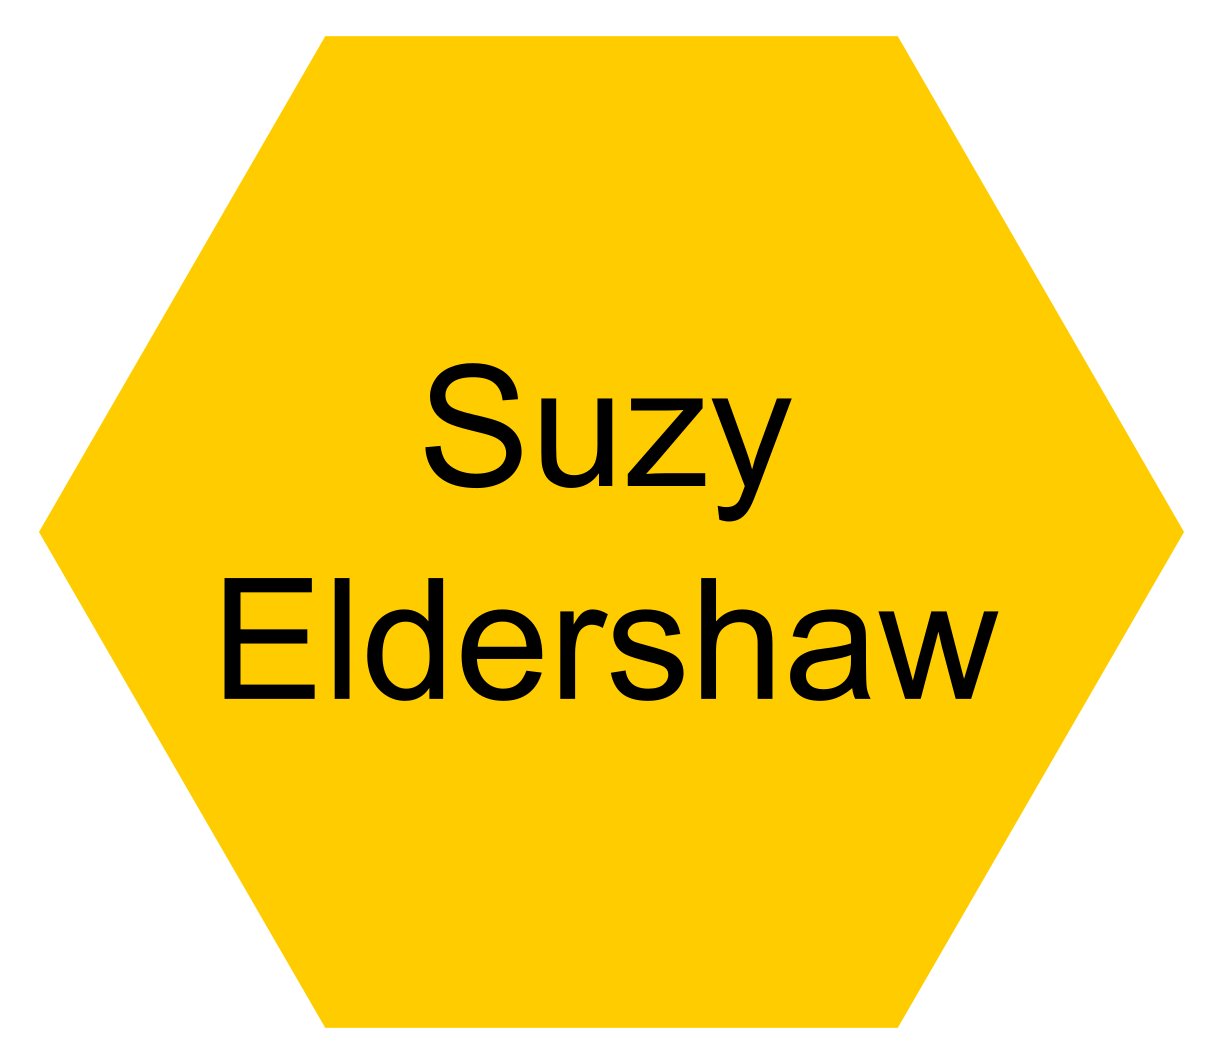 Dr. Suzy Eldershaw (University of Exeter: Raman Nanotheranostics Programme Manager) - Click this icon to reveal their contact details.